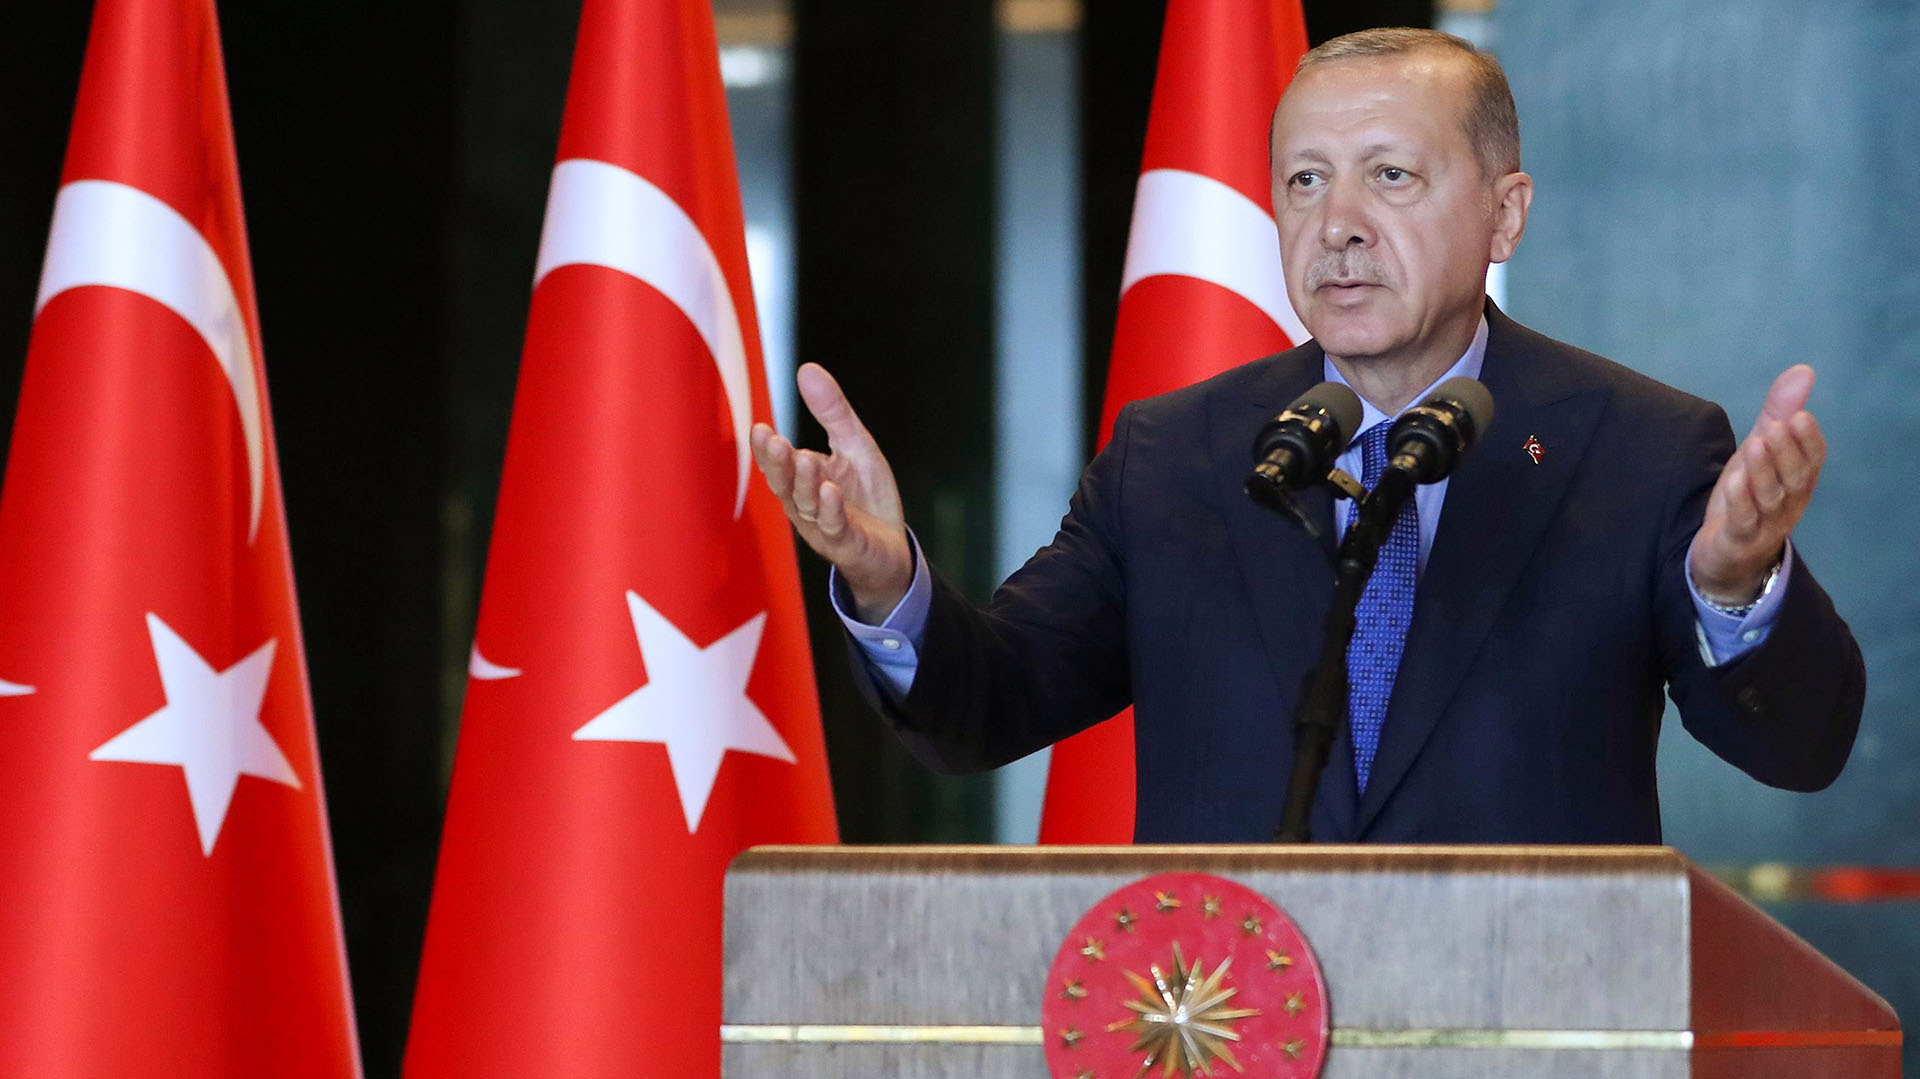 Erdogan, presidente de Turquía (AFP PHOTO / TURKISH PRESIDENTIAL PRESS SERVICE / KAYHAN OZER)